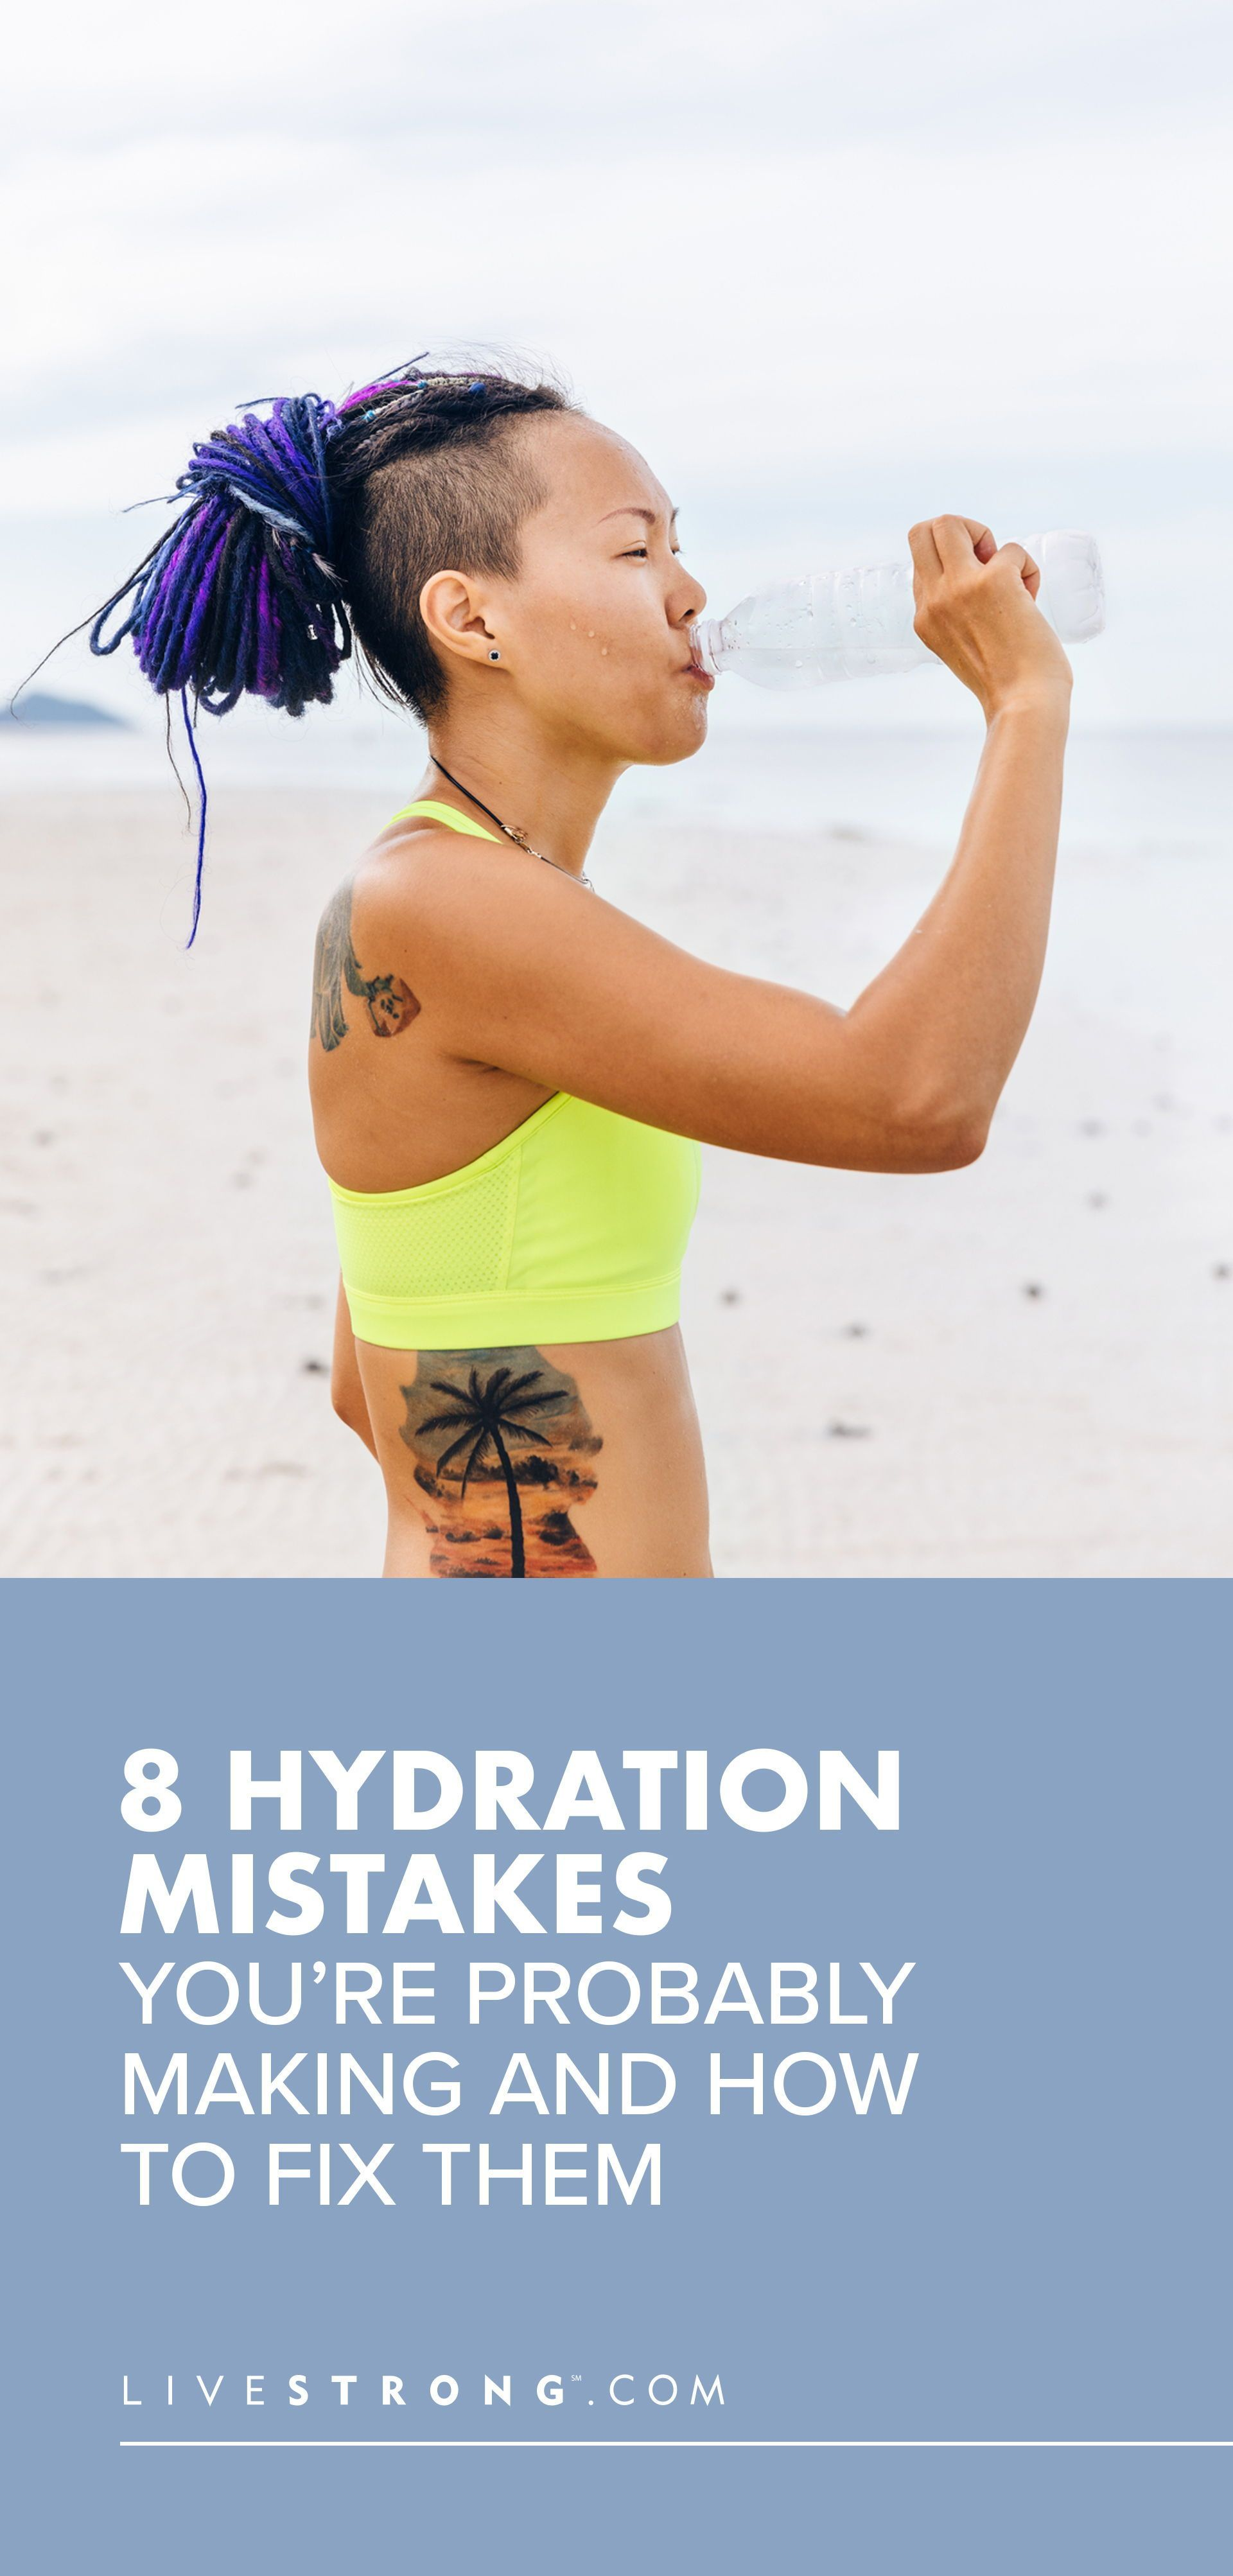 how to hydrate quickly when hangover